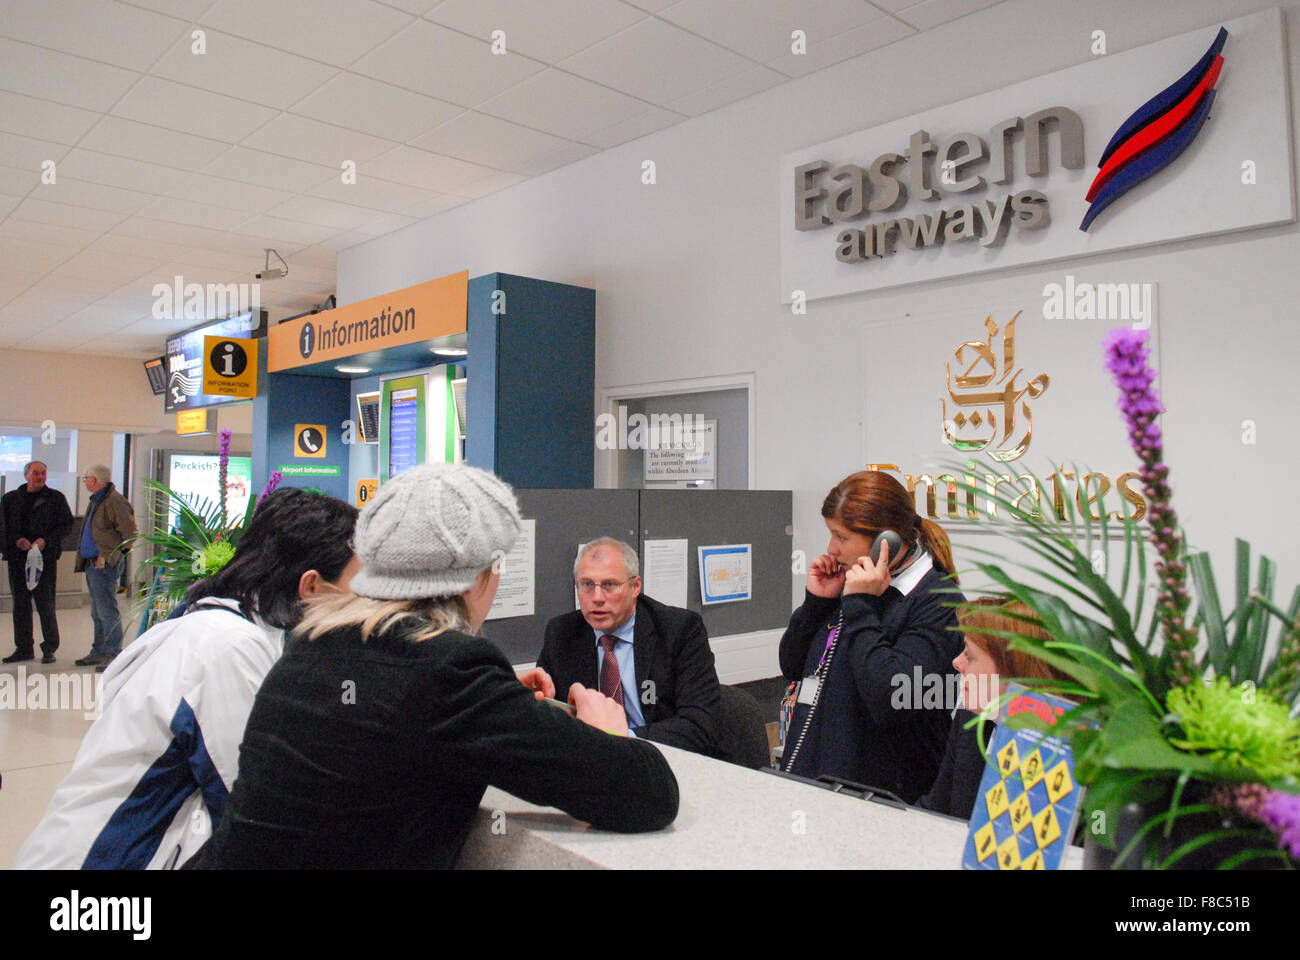 Emirates customer service desk at Aberdeen Airport in Aberdeen, Scotland. - Stock Image